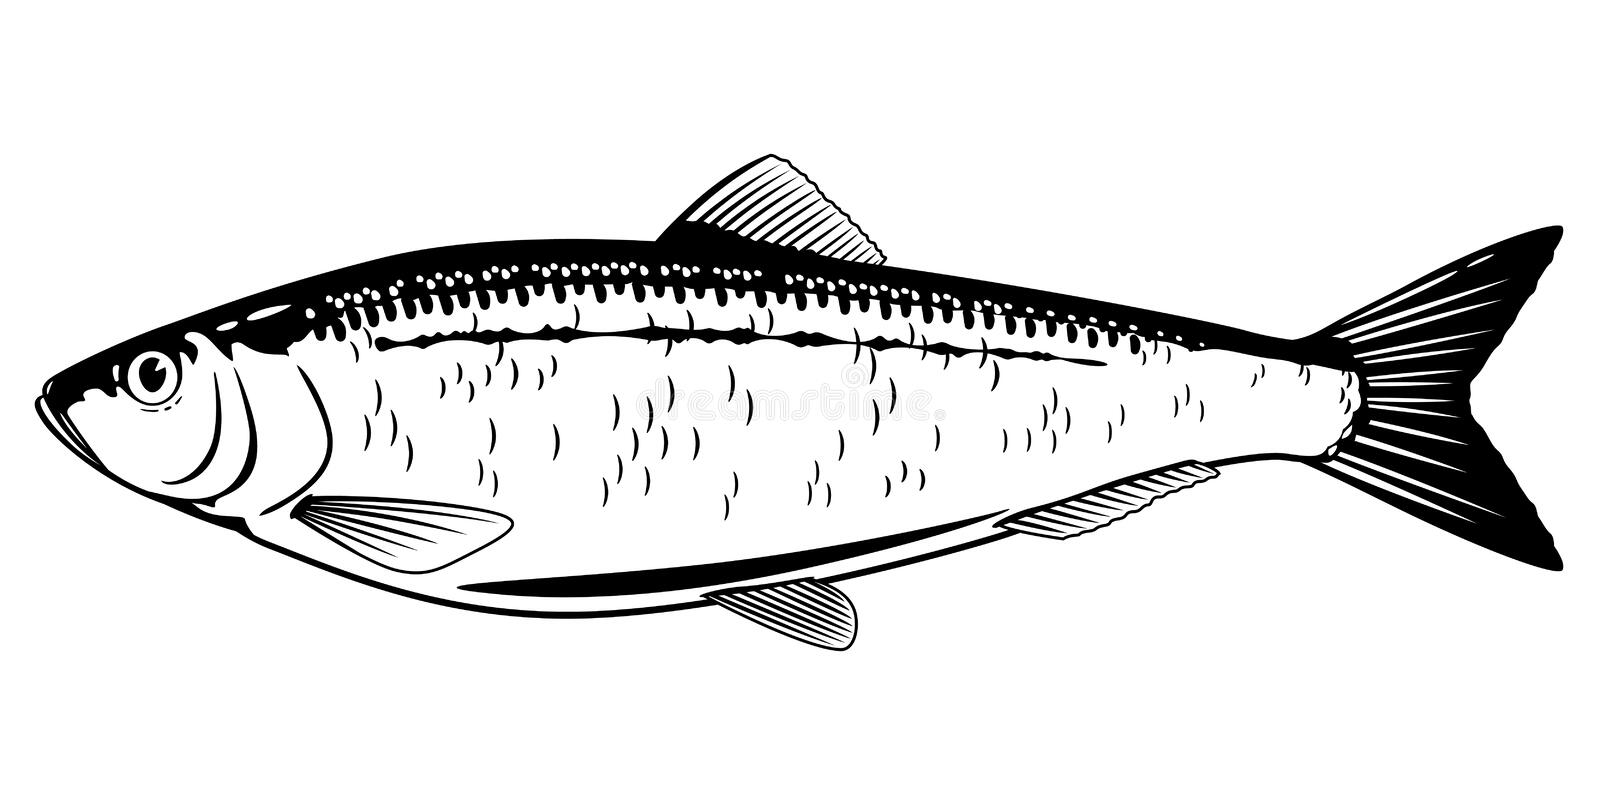 Atlantic Herring Black and White Fish. One Atlantic herring fish from one side in black and white color, isolated royalty free illustration